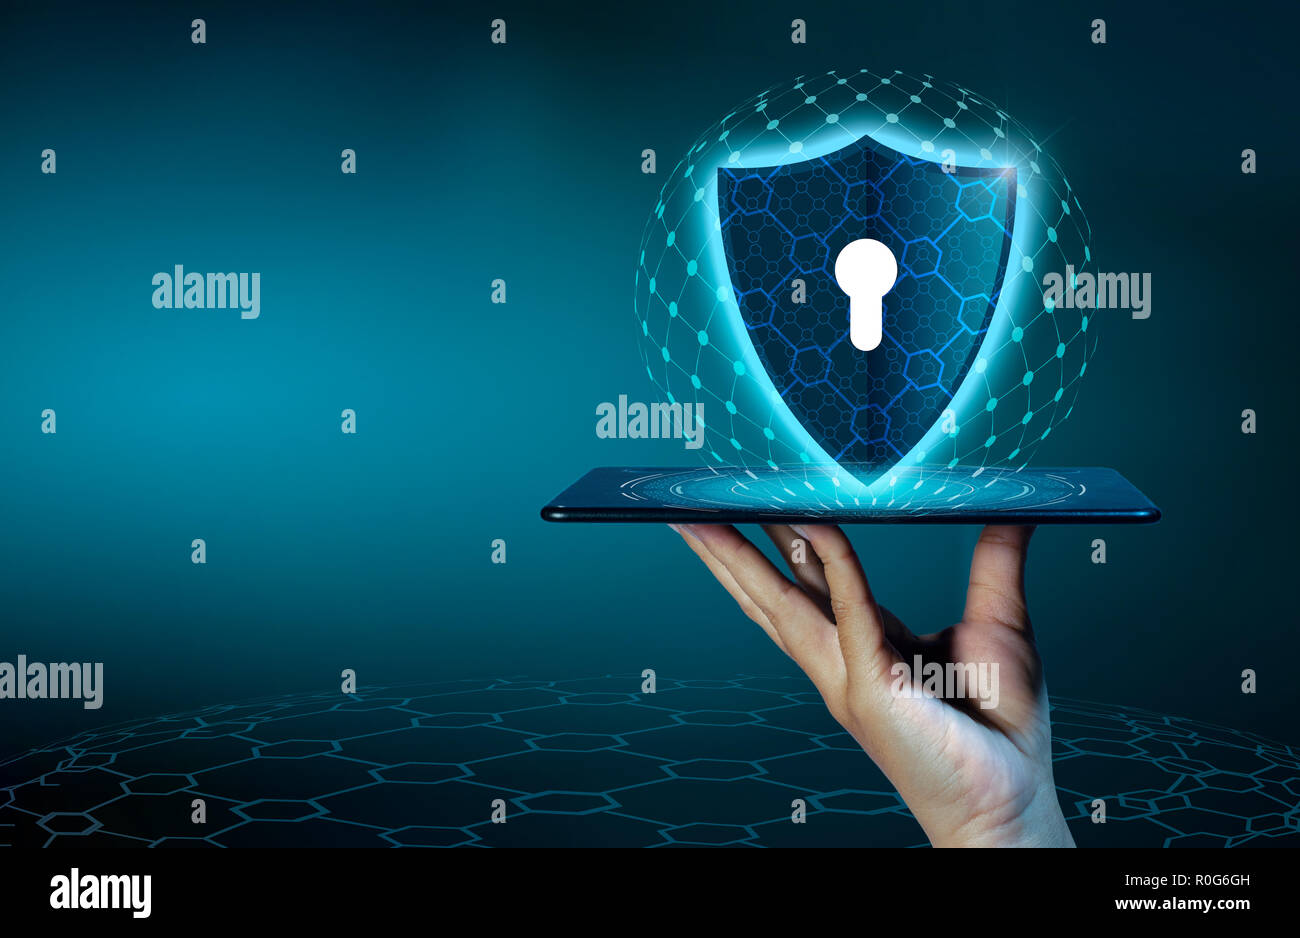 Prevent Cyber Crime Stock Photos & Prevent Cyber Crime Stock